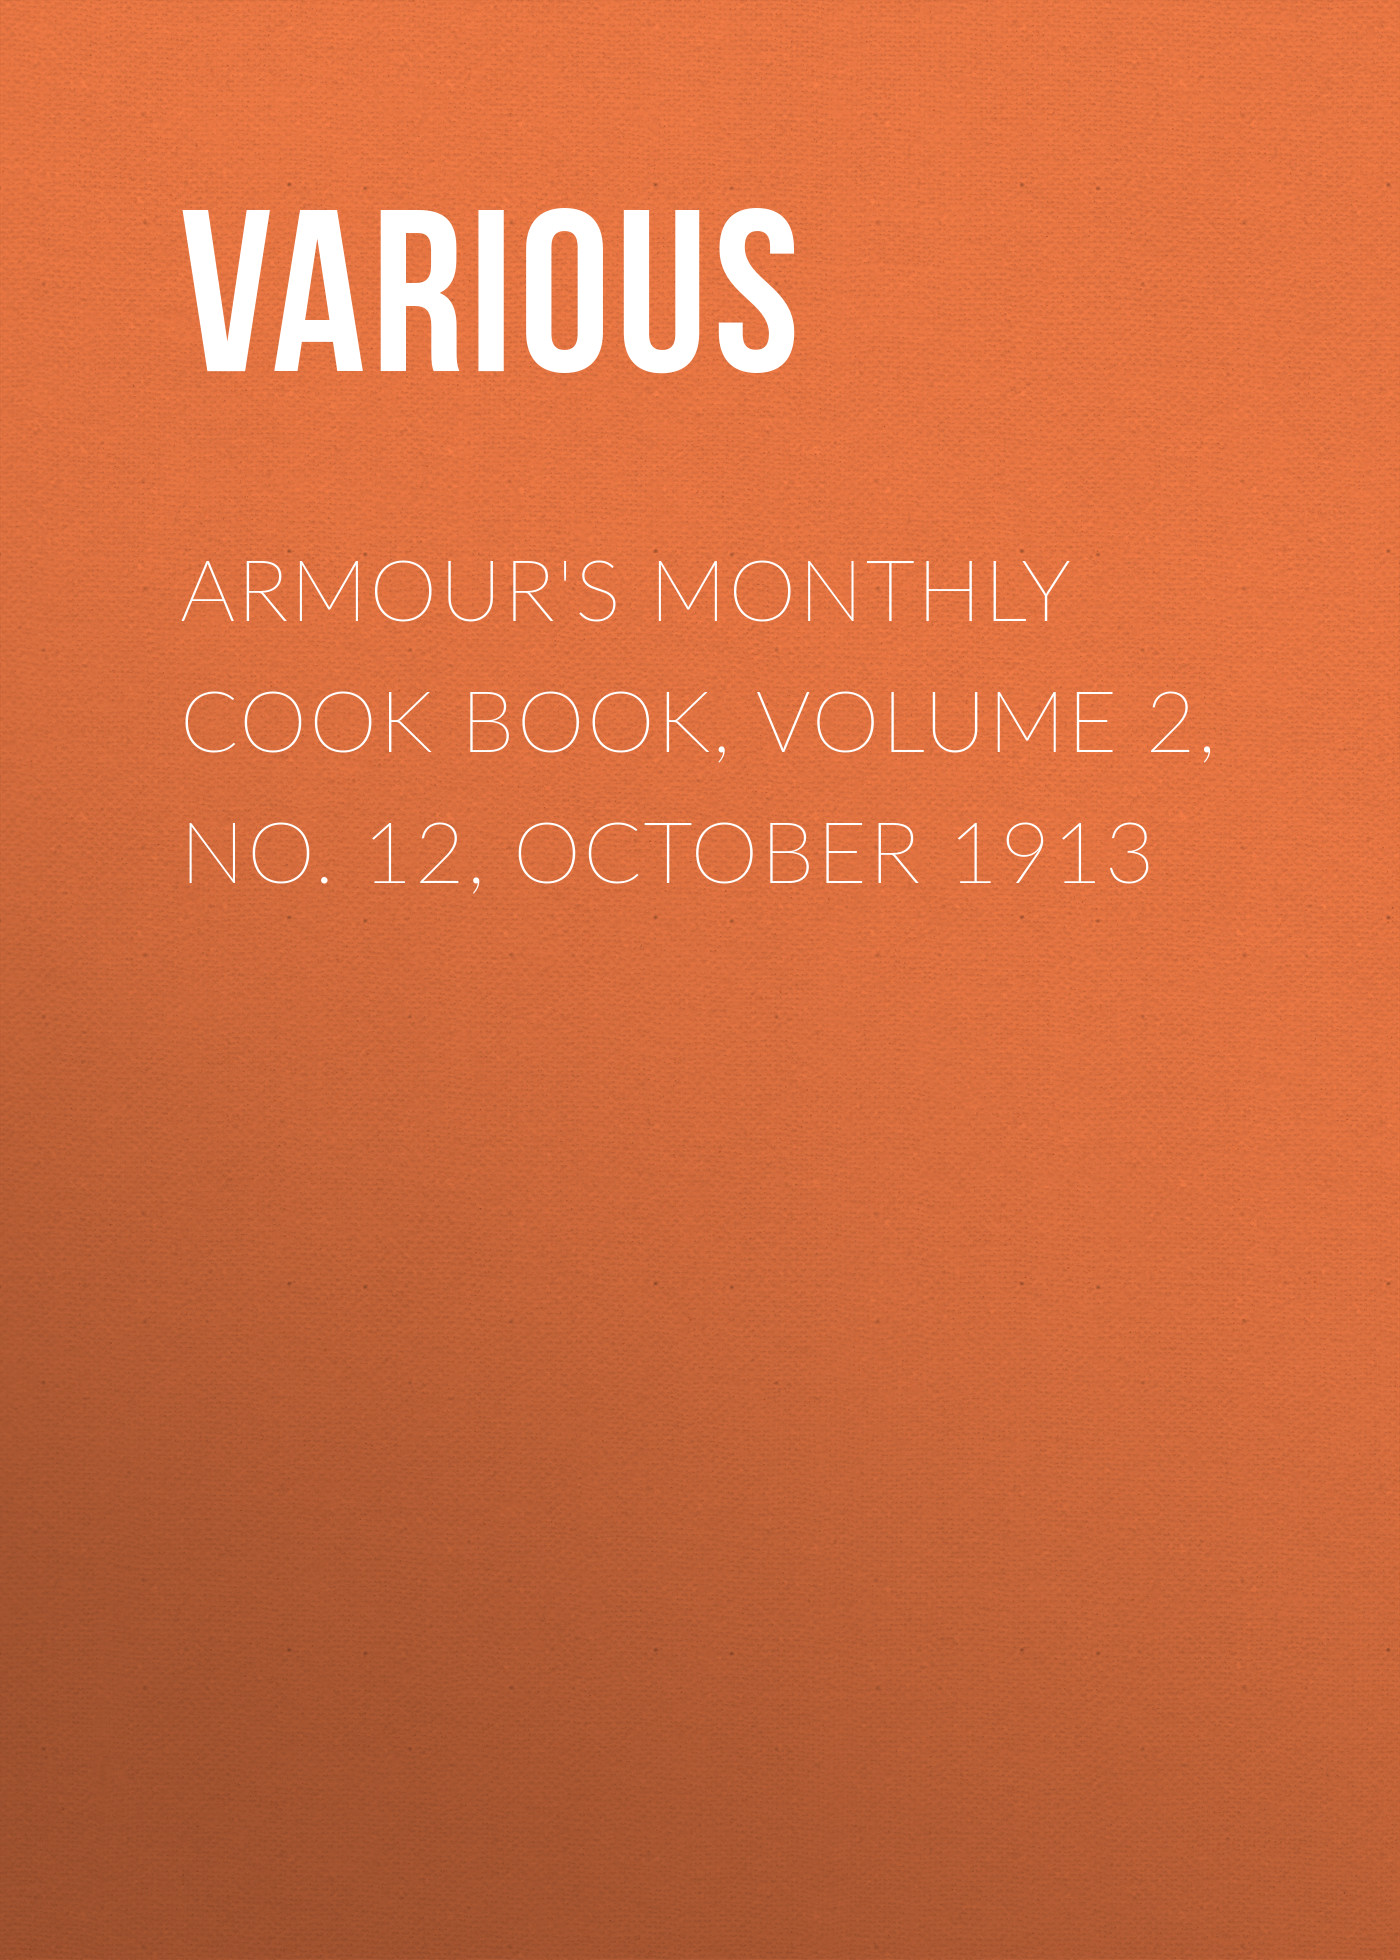 Various Armour's Monthly Cook Book, Volume 2, No. 12, October 1913 various beadle s dime song book no 1